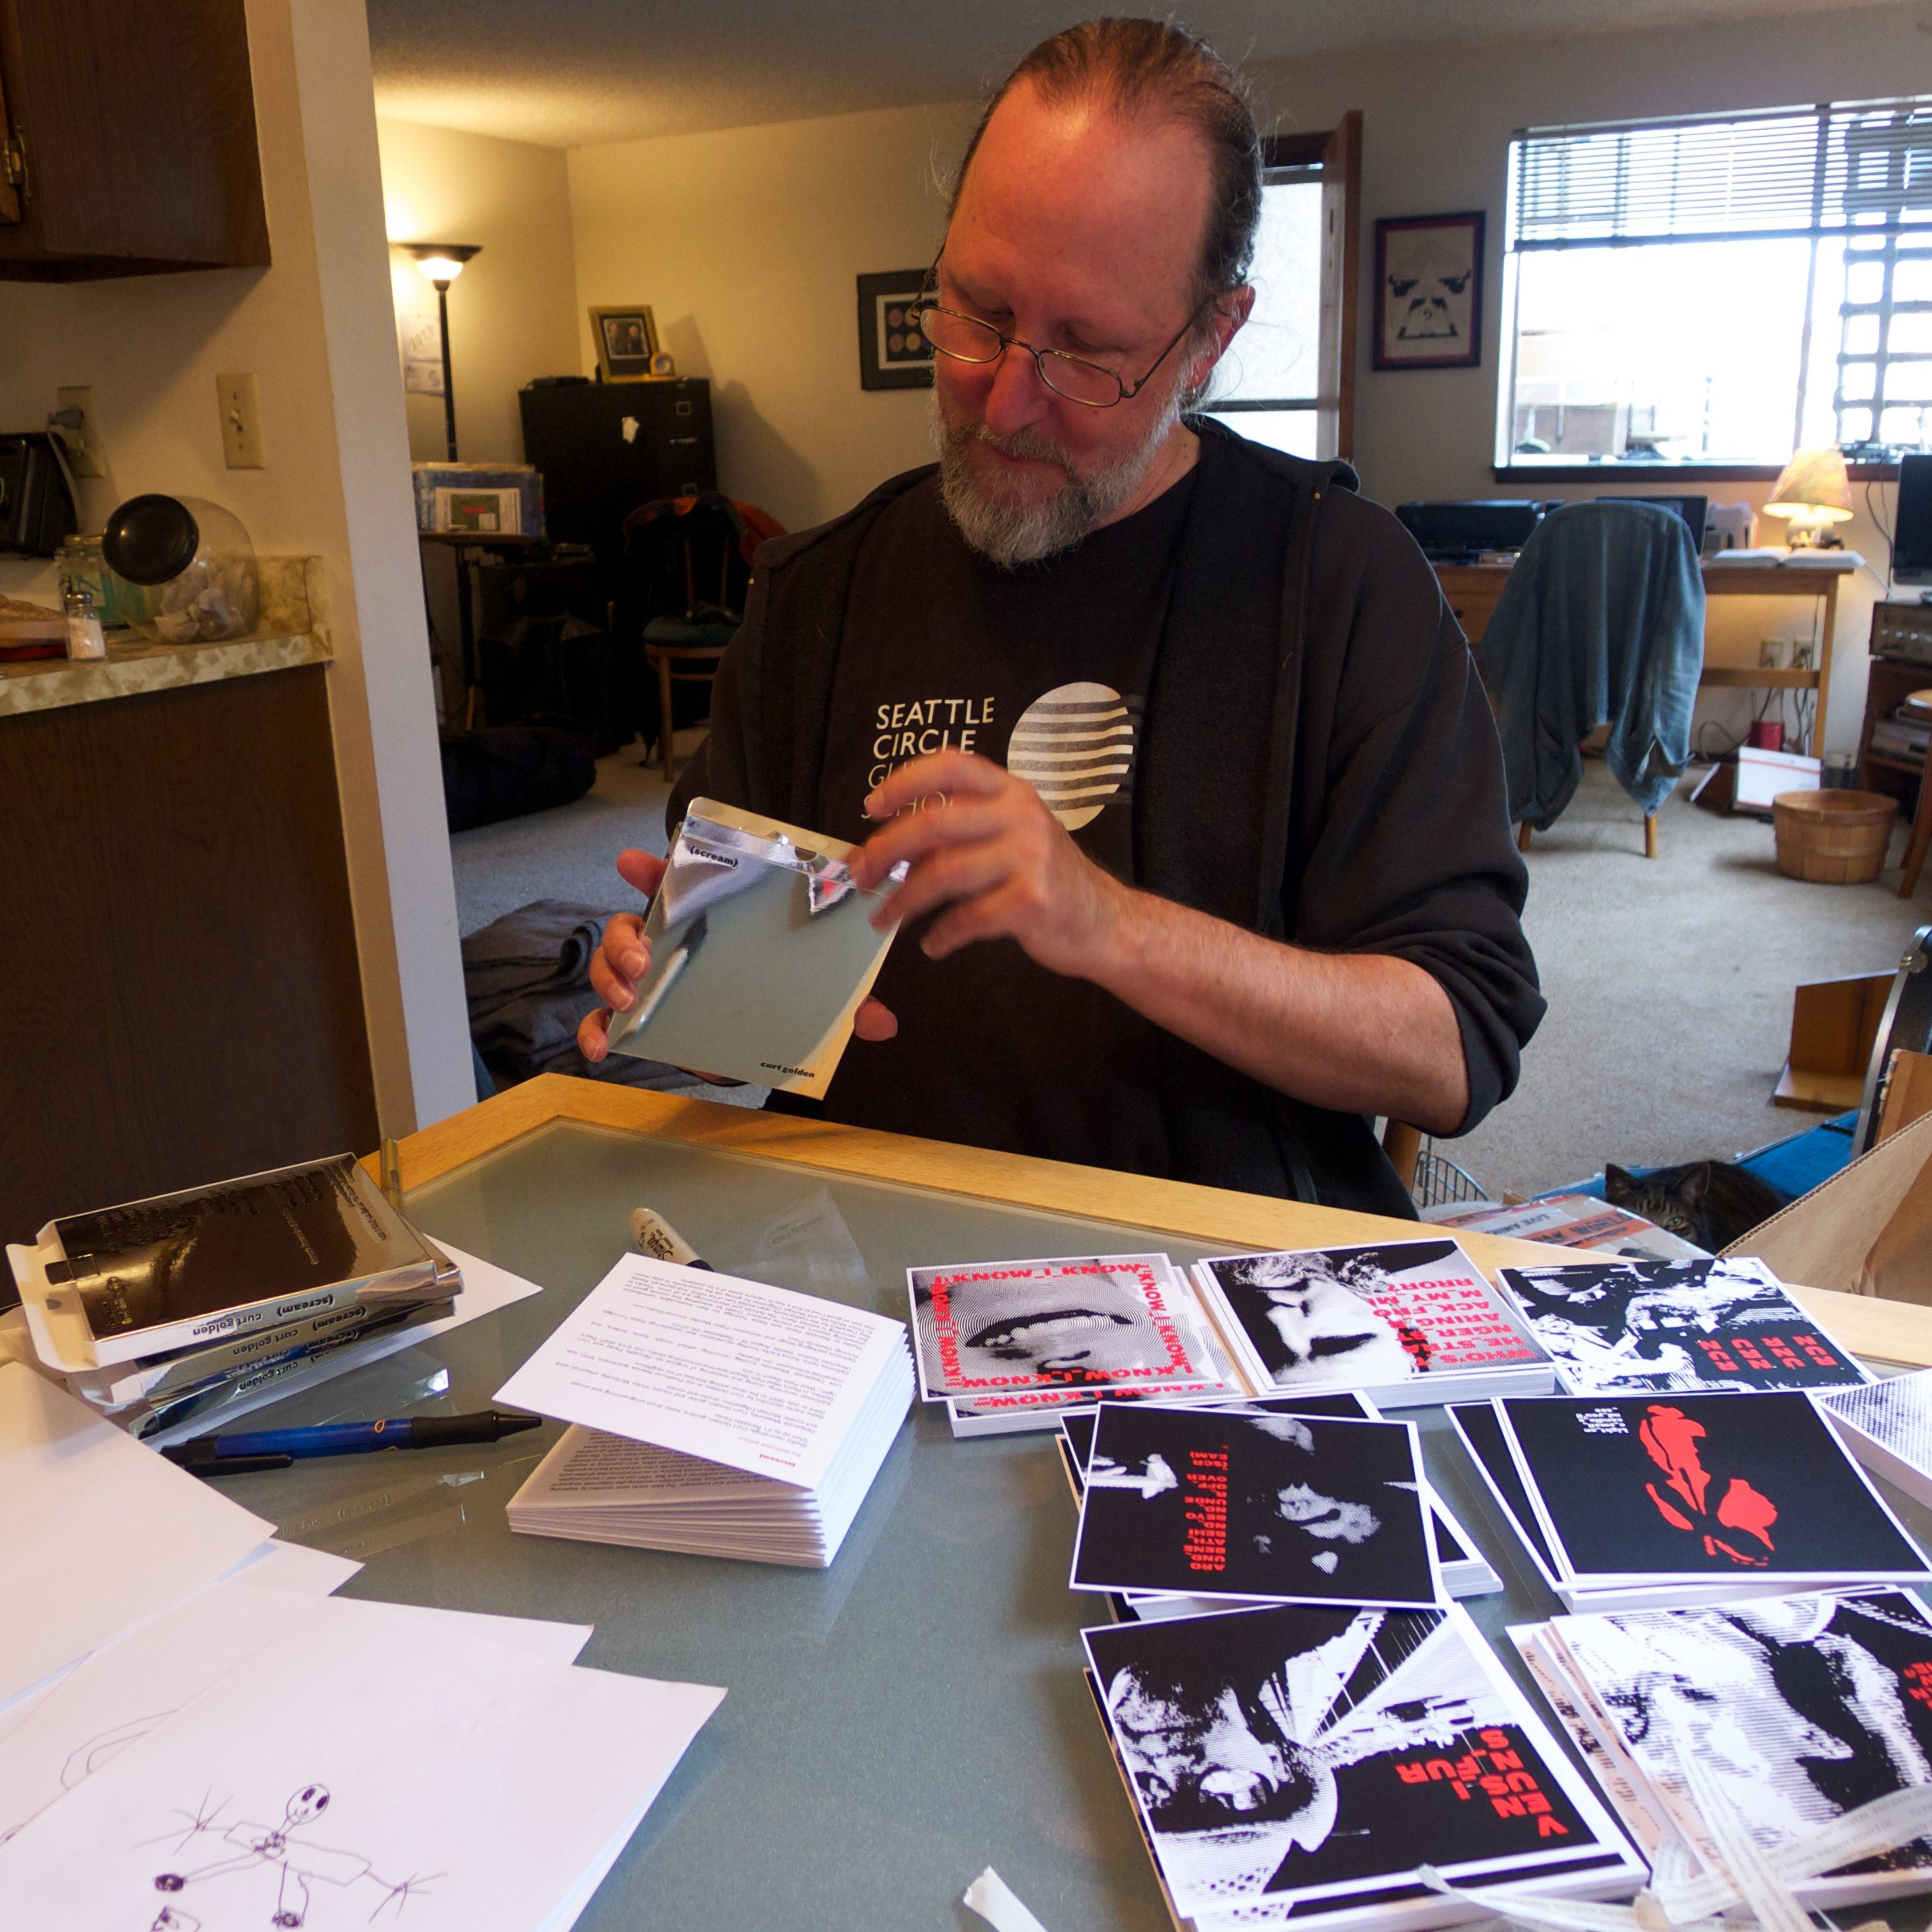 The artist assembling the limited addition packages. It's a glamorous life.